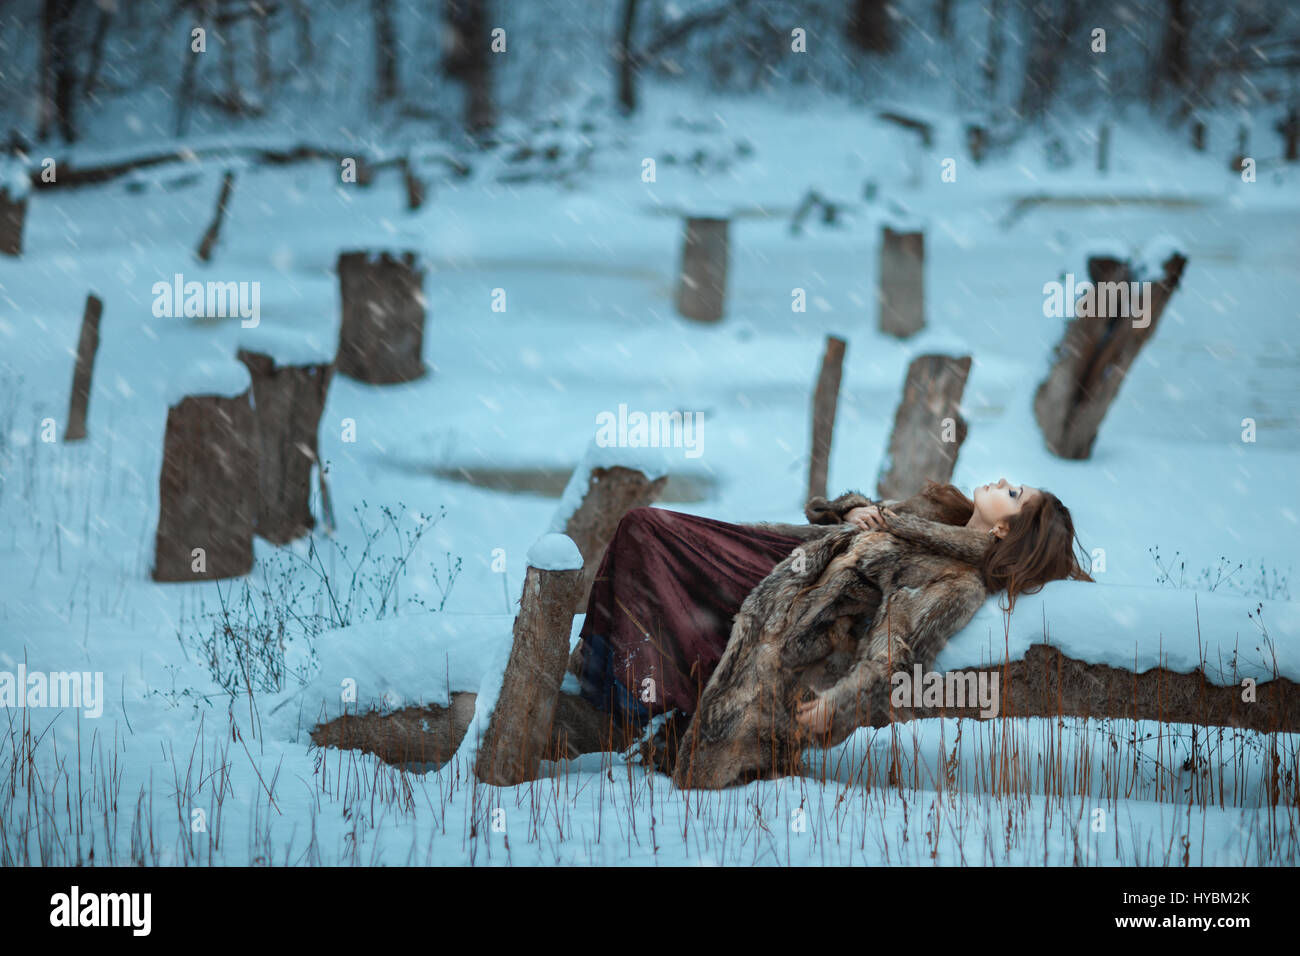 Girl lay on a tree and freeze in winter. She is alone in the woods among the drifts of snow. - Stock Image